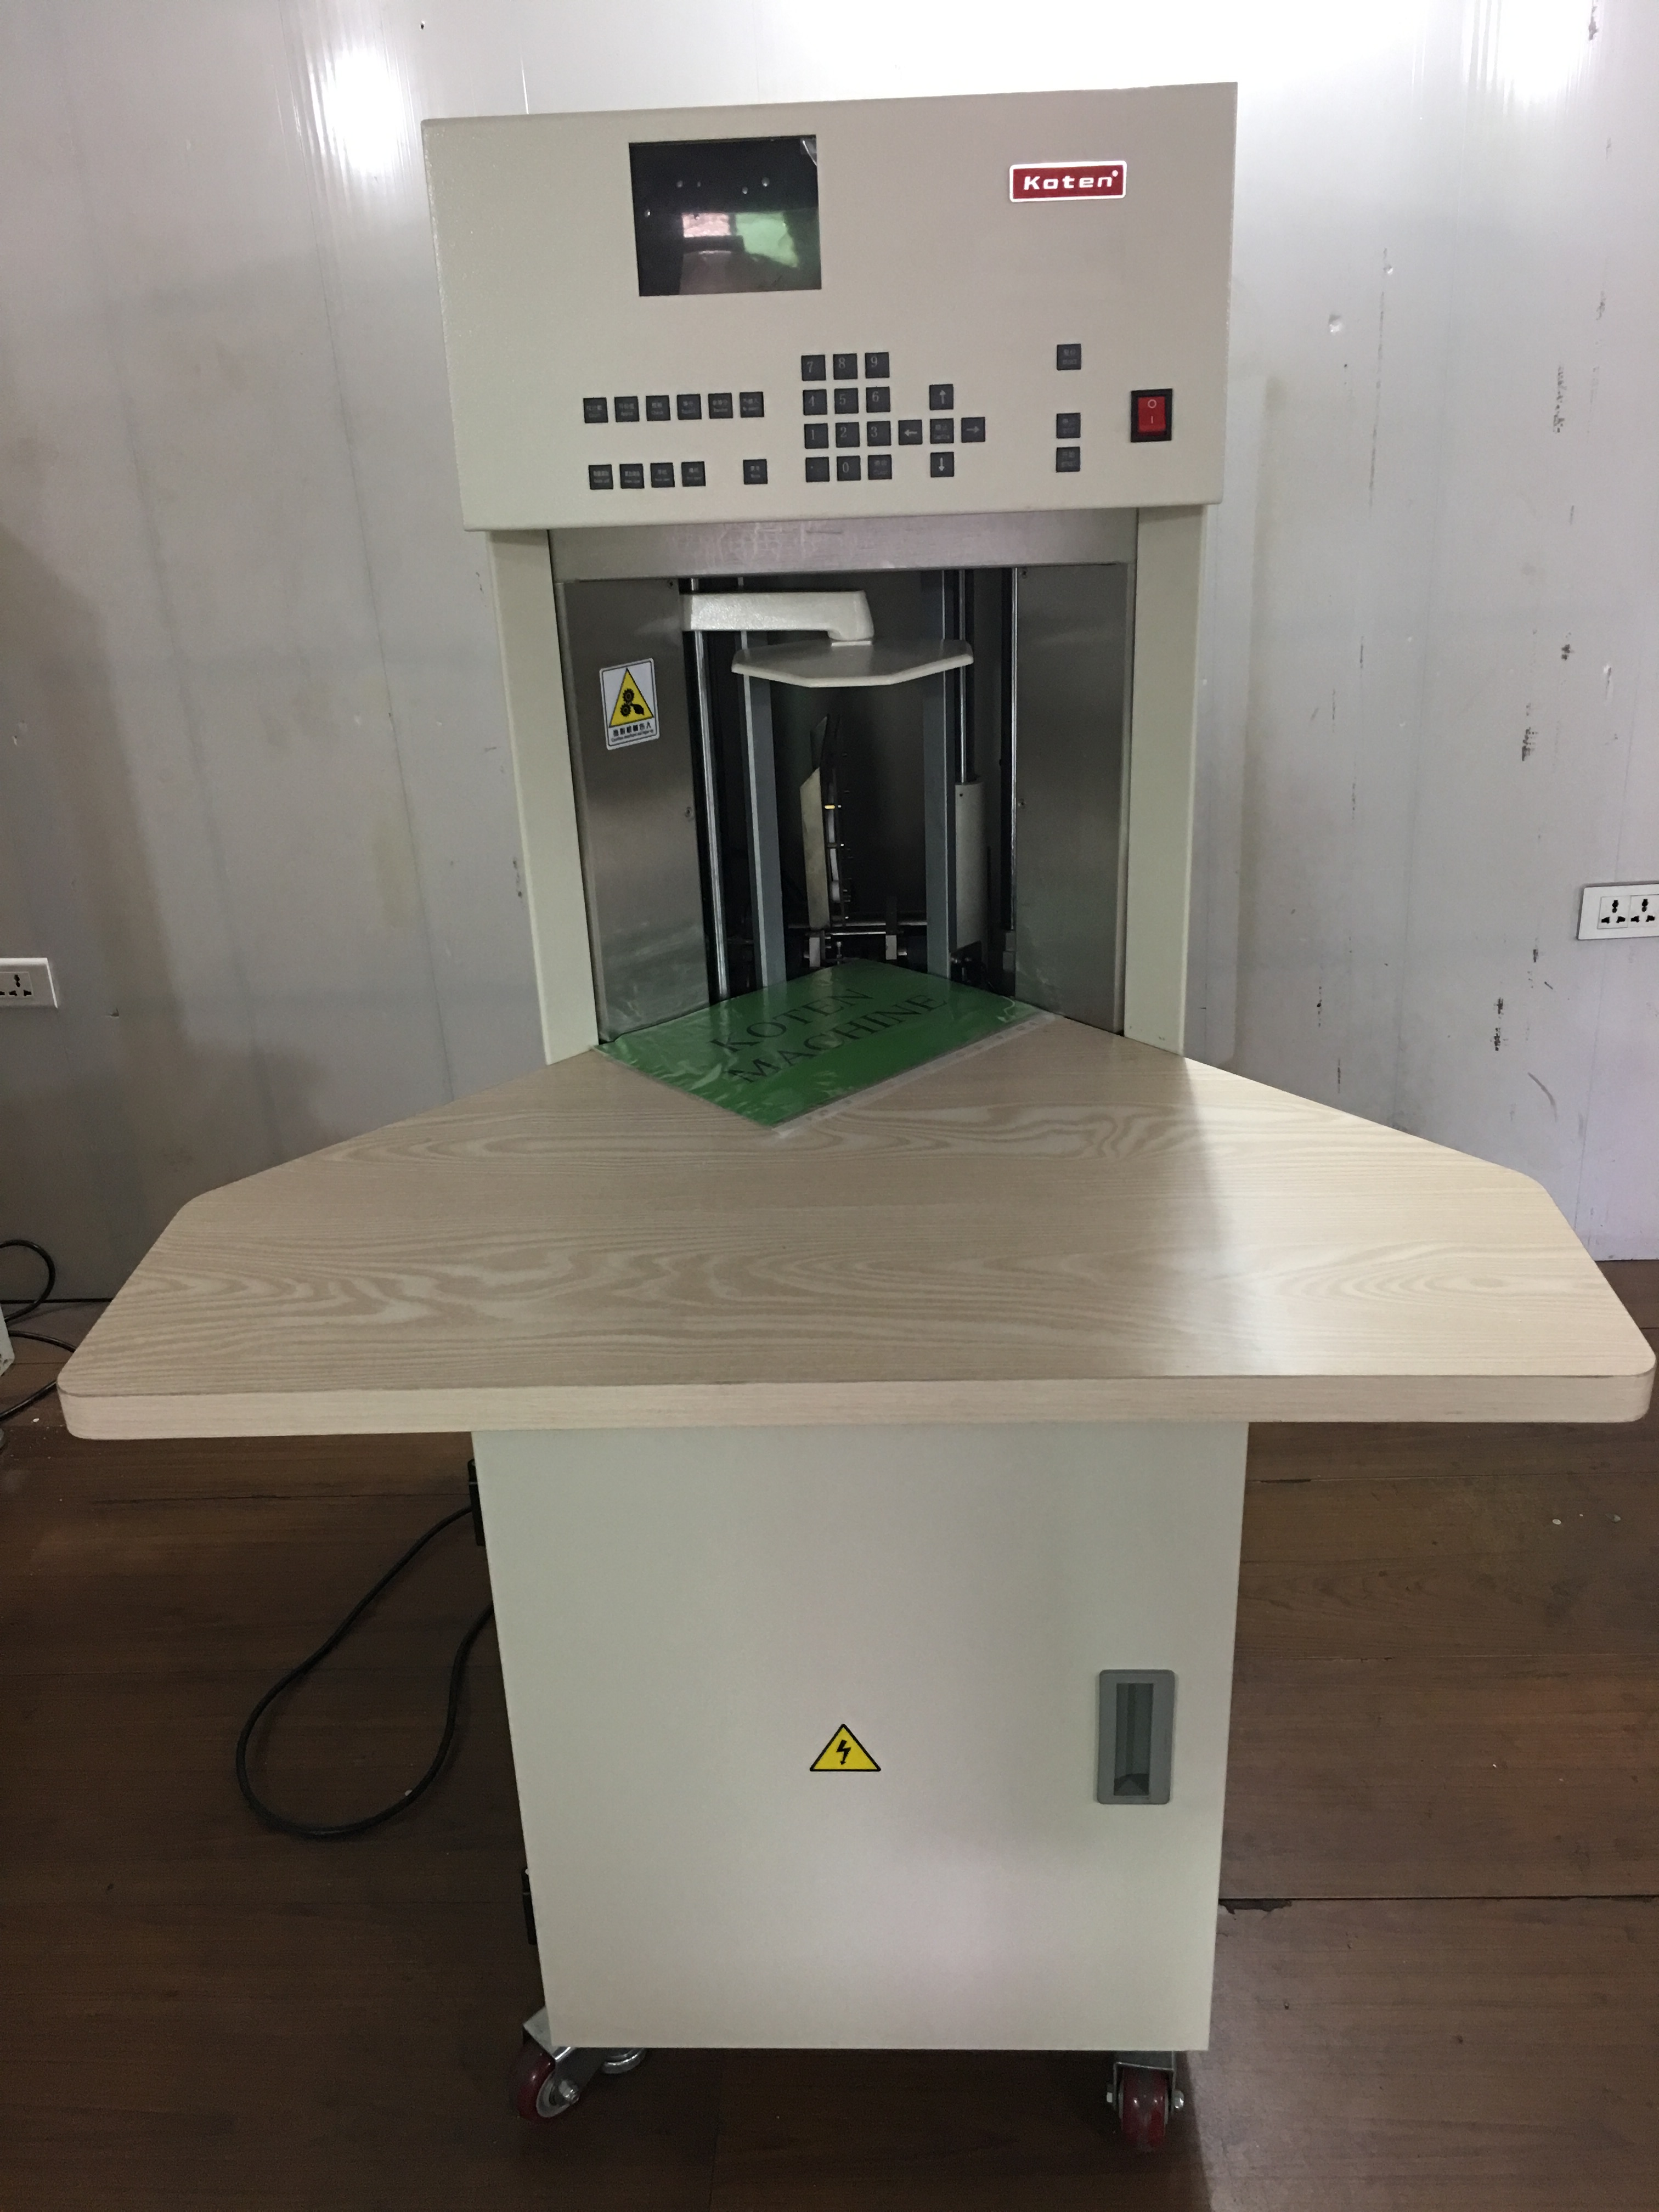 Automatic Paper Counting Machine Model SZJ-800